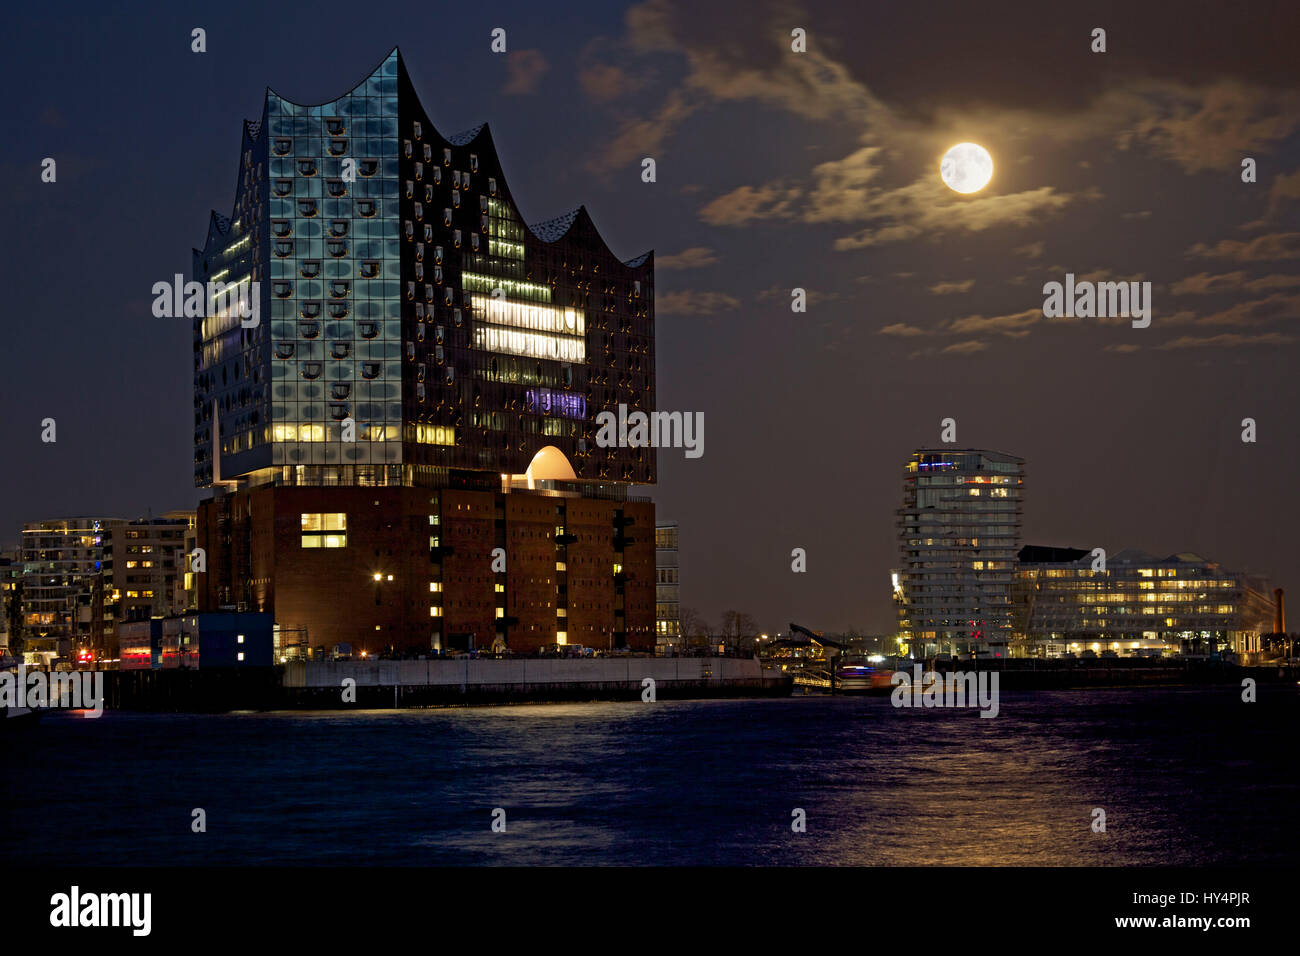 The full moon is  in the sky behind the Elbphilharmonie / Elbe Philharmonic Hall, right side of Vasco Da Gama Tower - Stock Image